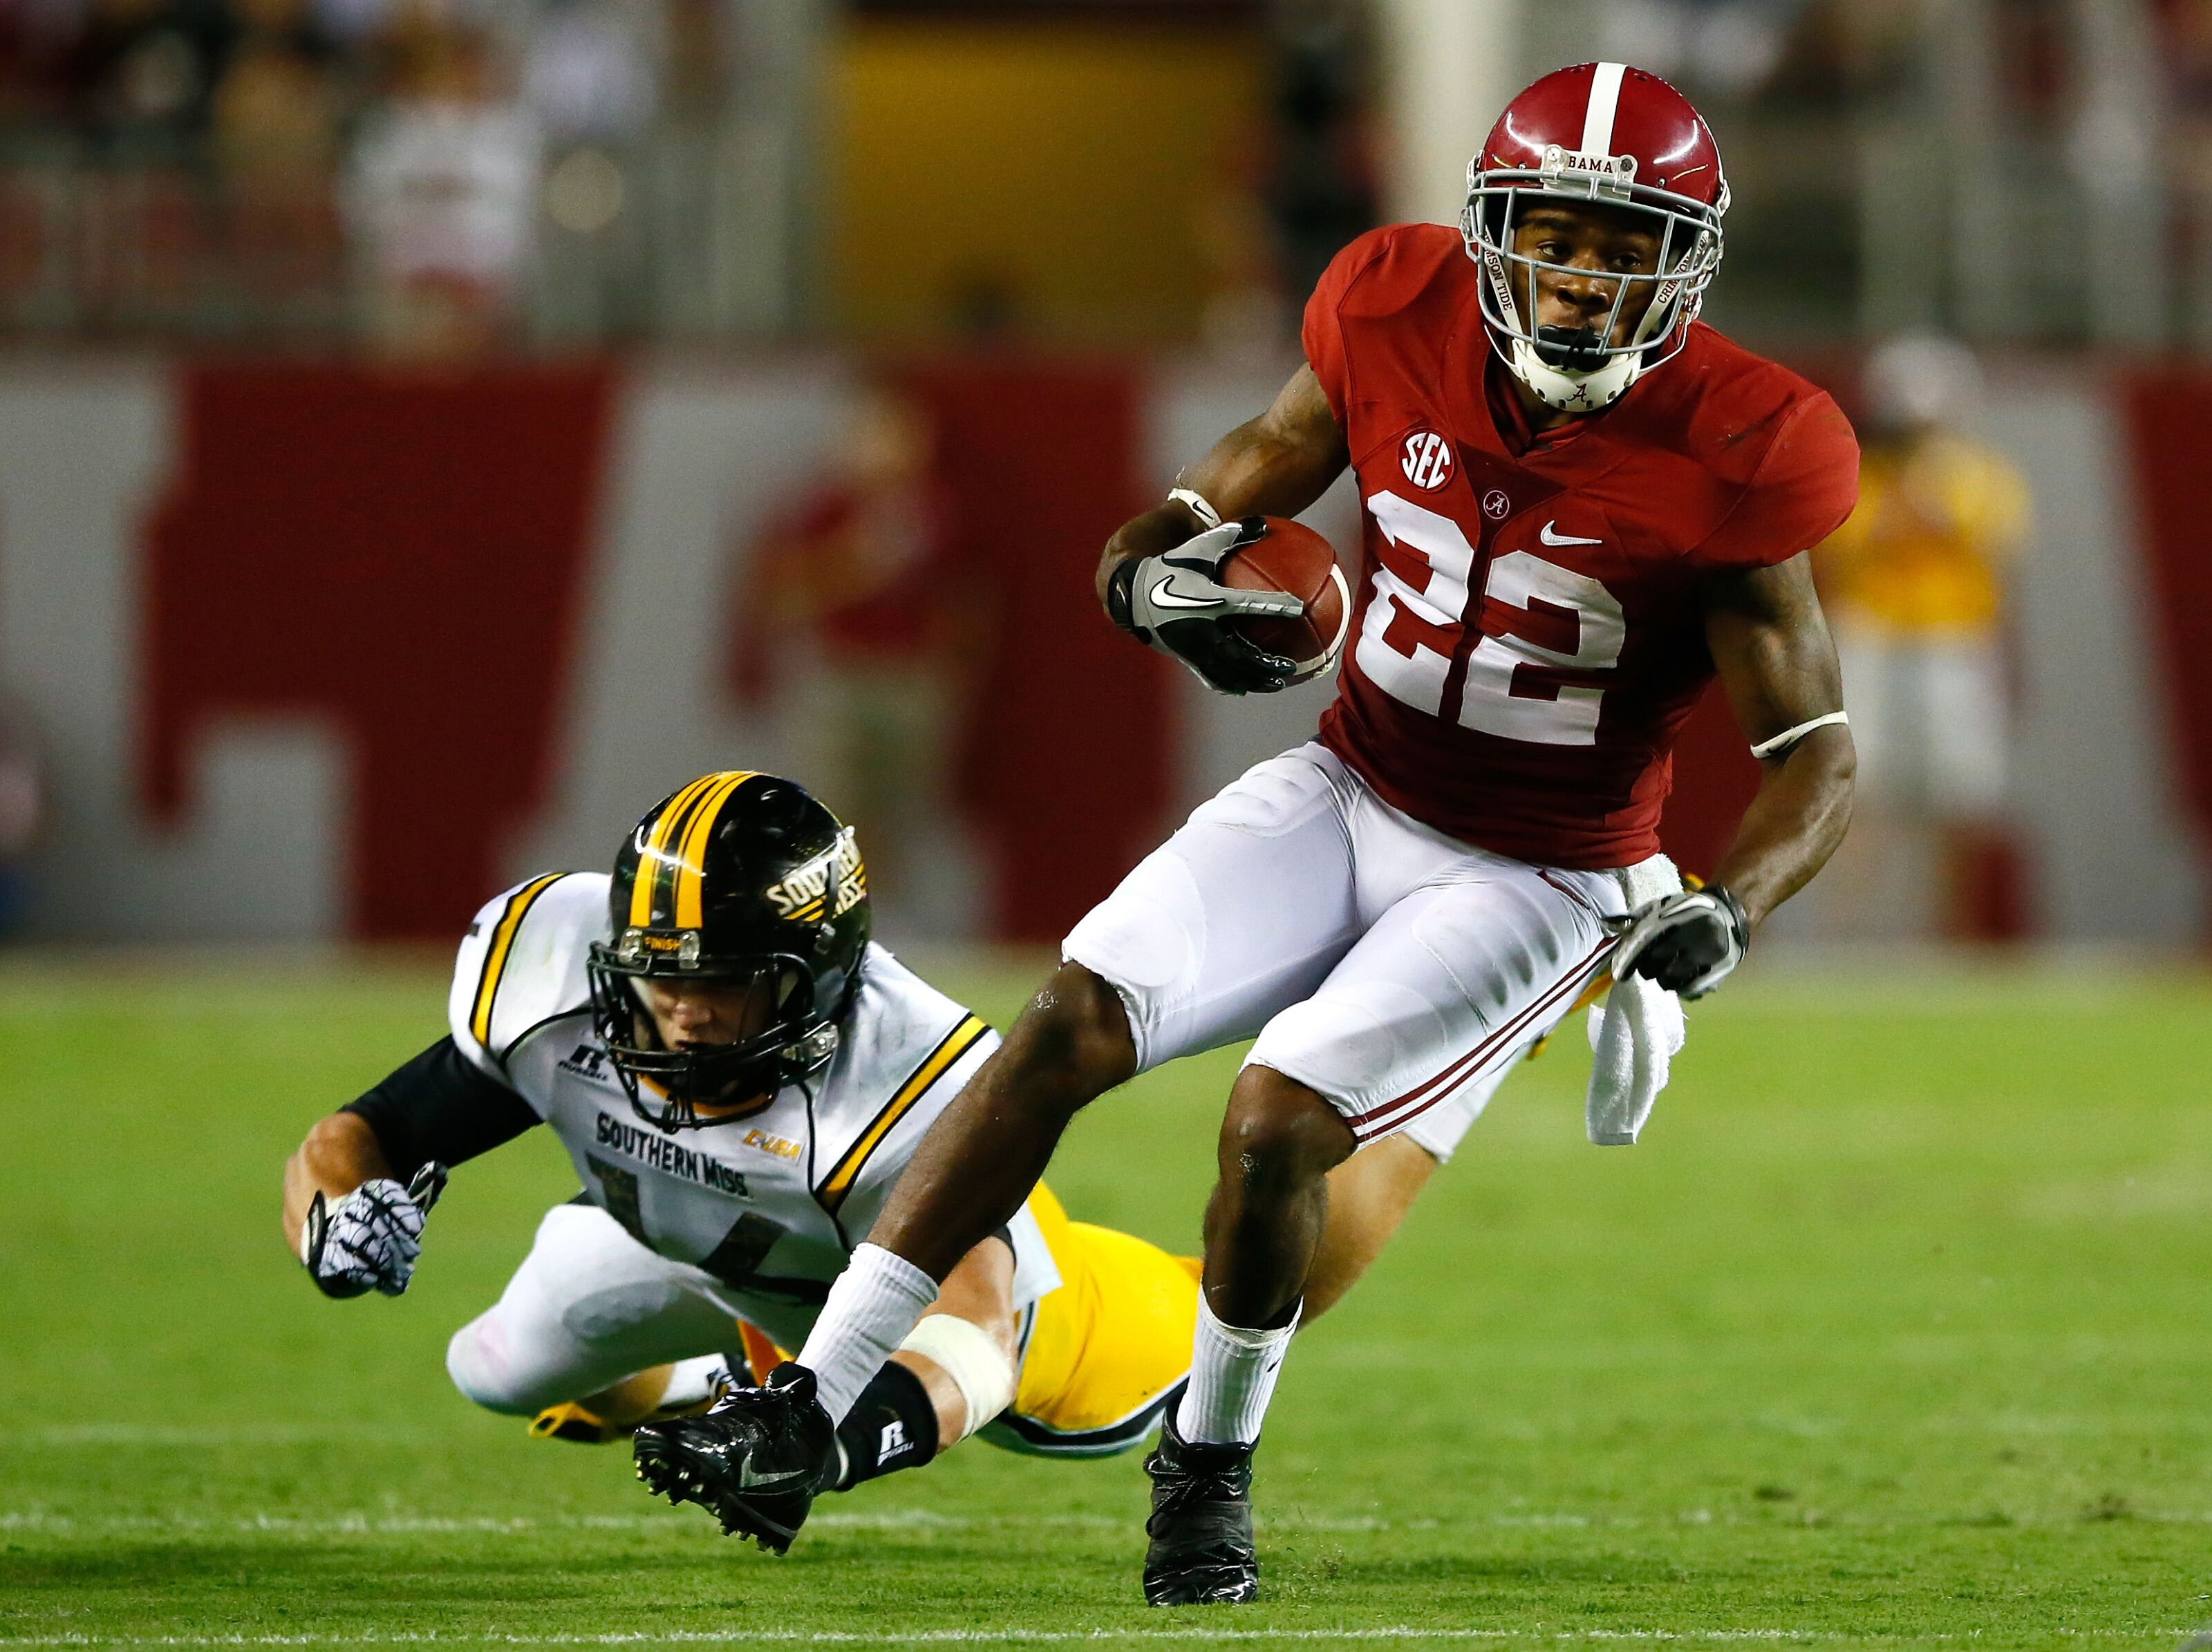 Alabama Football: Tide and Southern Mississippi have a long history